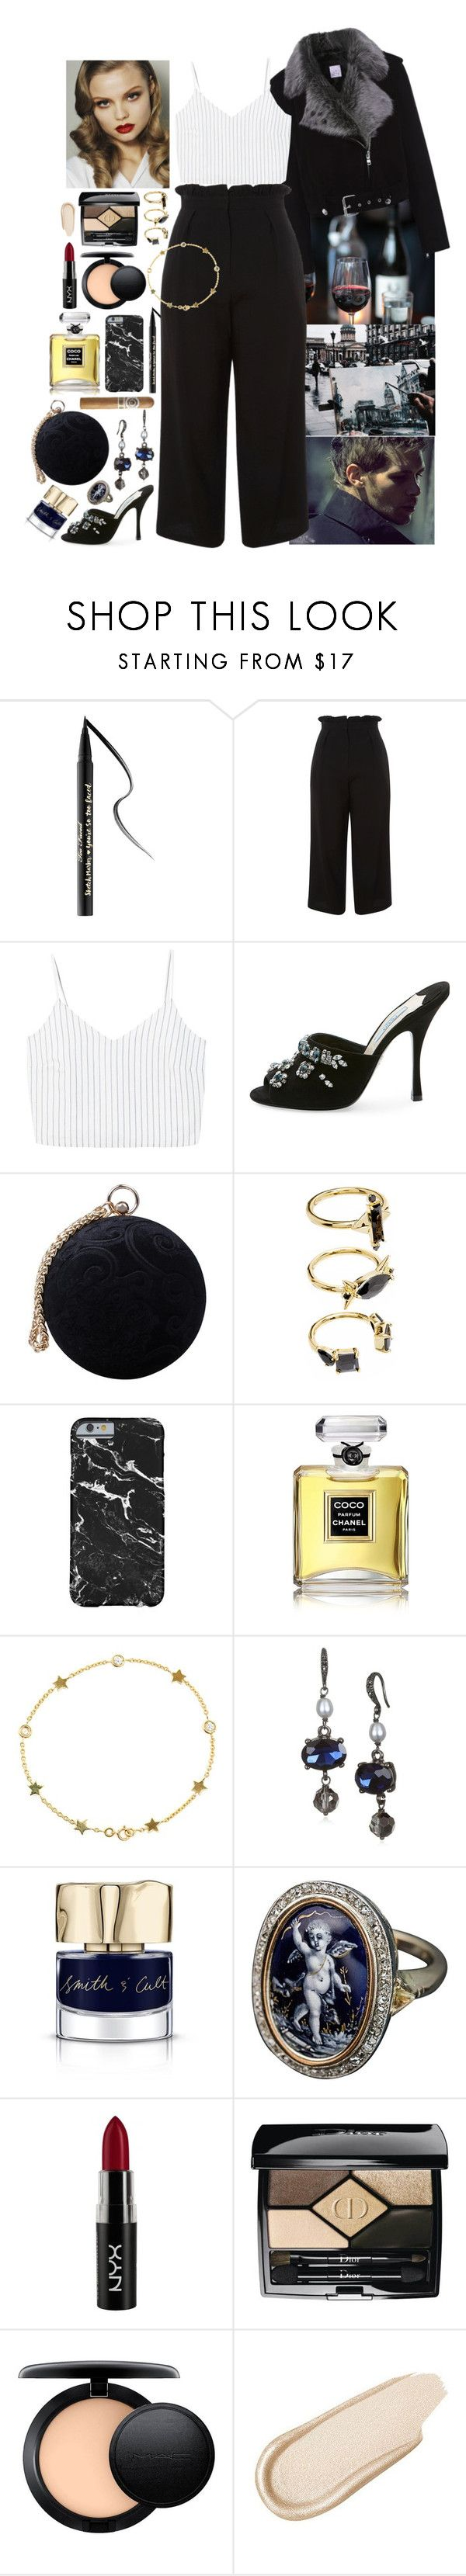 """""""Love Is Mystical - Cold War Kids"""" by leo8august ❤ liked on Polyvore featuring Too Faced Cosmetics, La Bête, Topshop, MANGO, Prada, Carvela, Victoria's Secret, Noir Jewelry, Chanel and Luis Miguel Howard"""